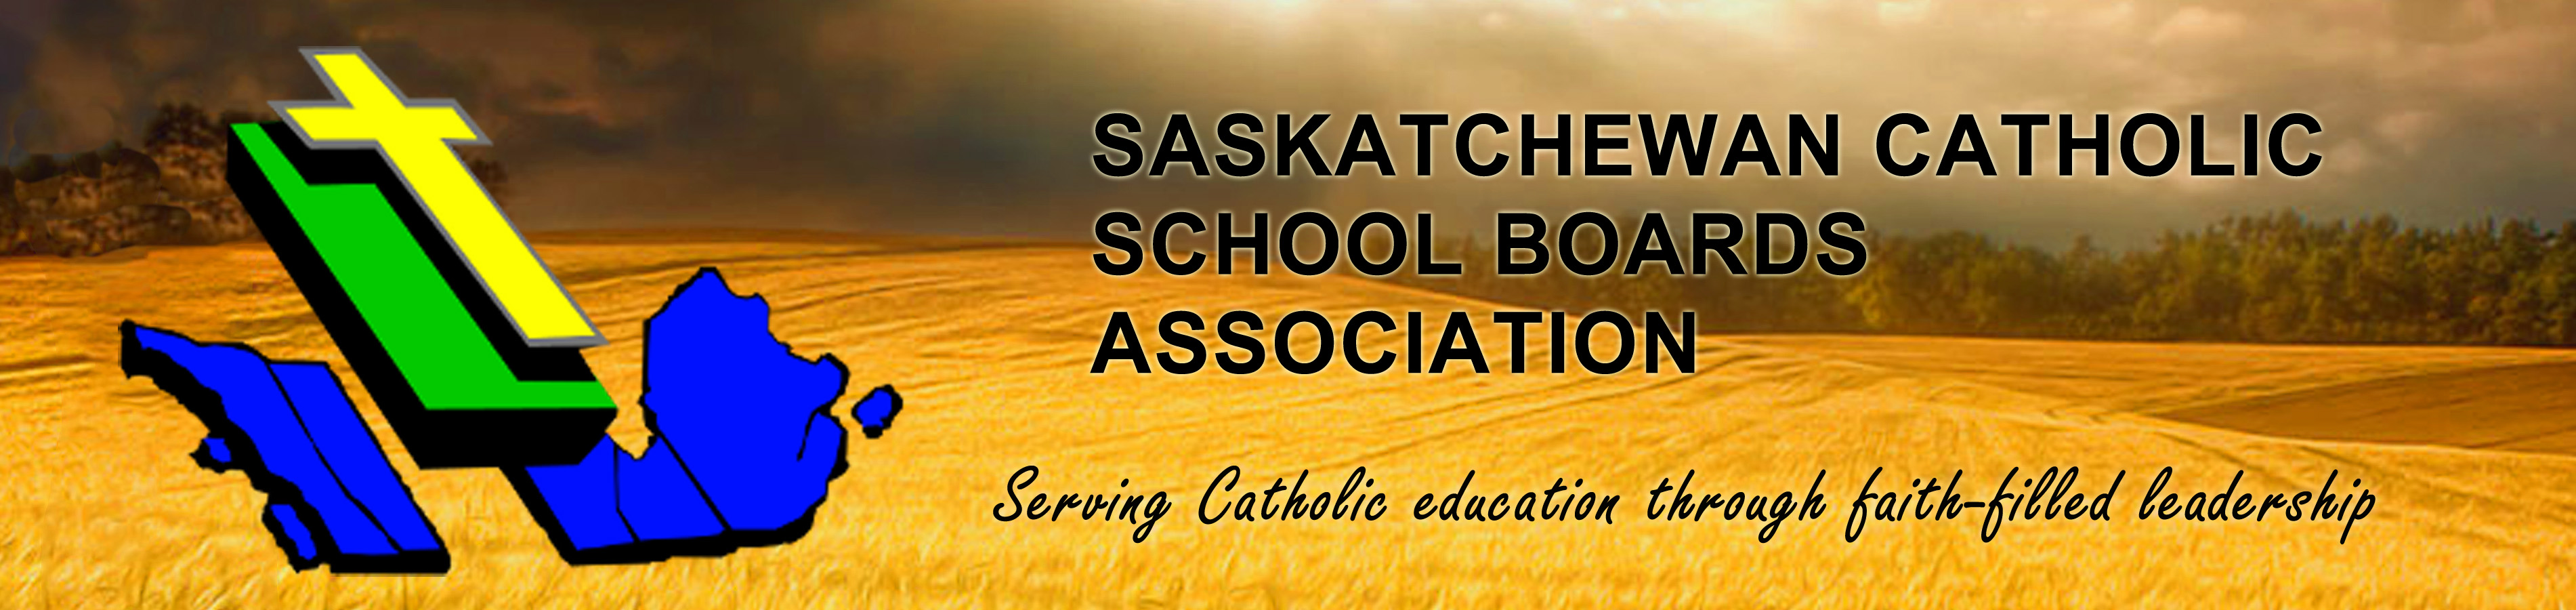 Saskatchewan Catholic School Boards Association